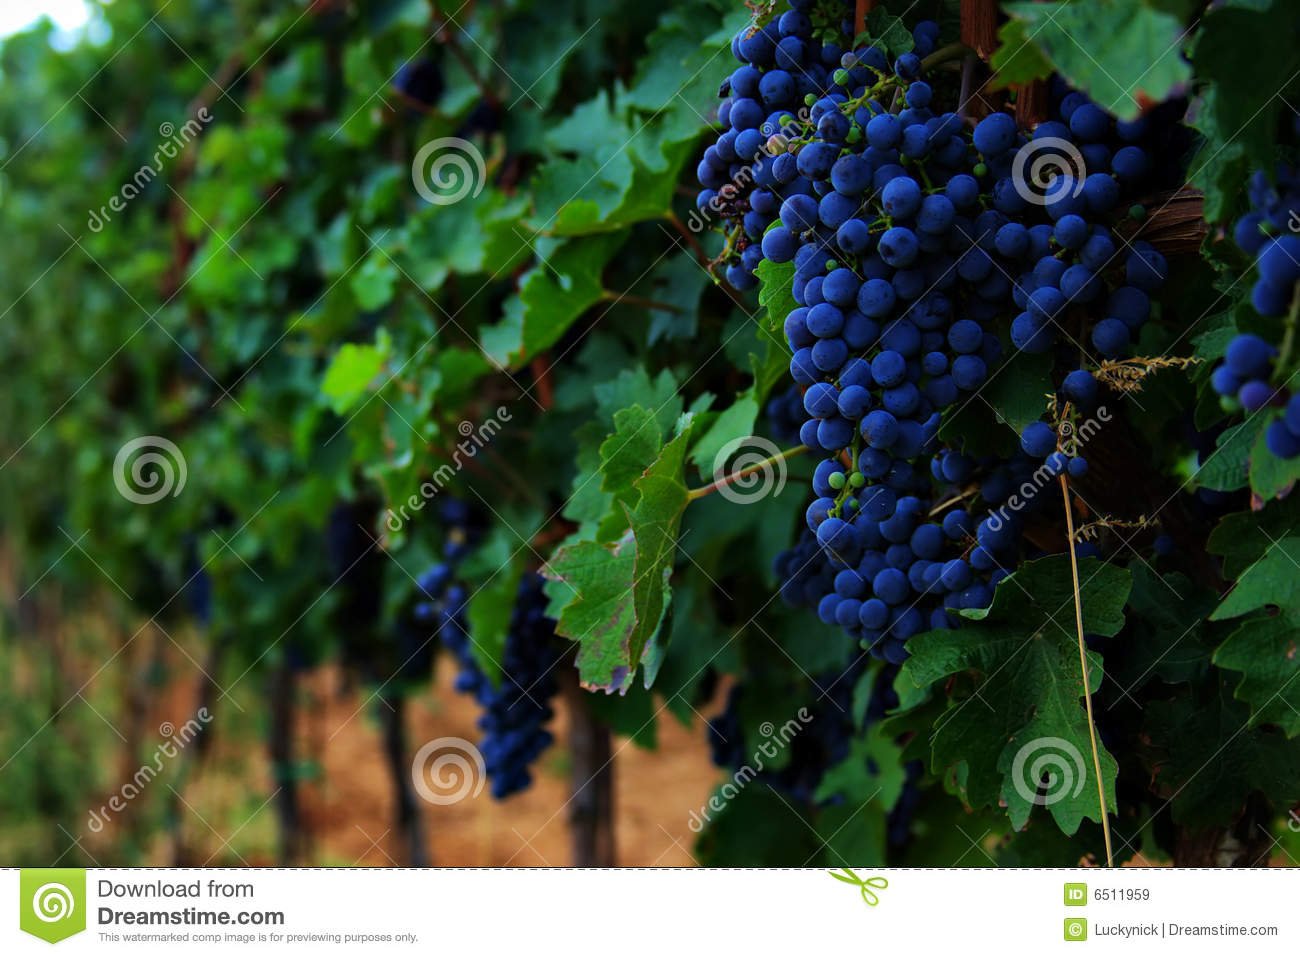 Grapes hanging from a vine